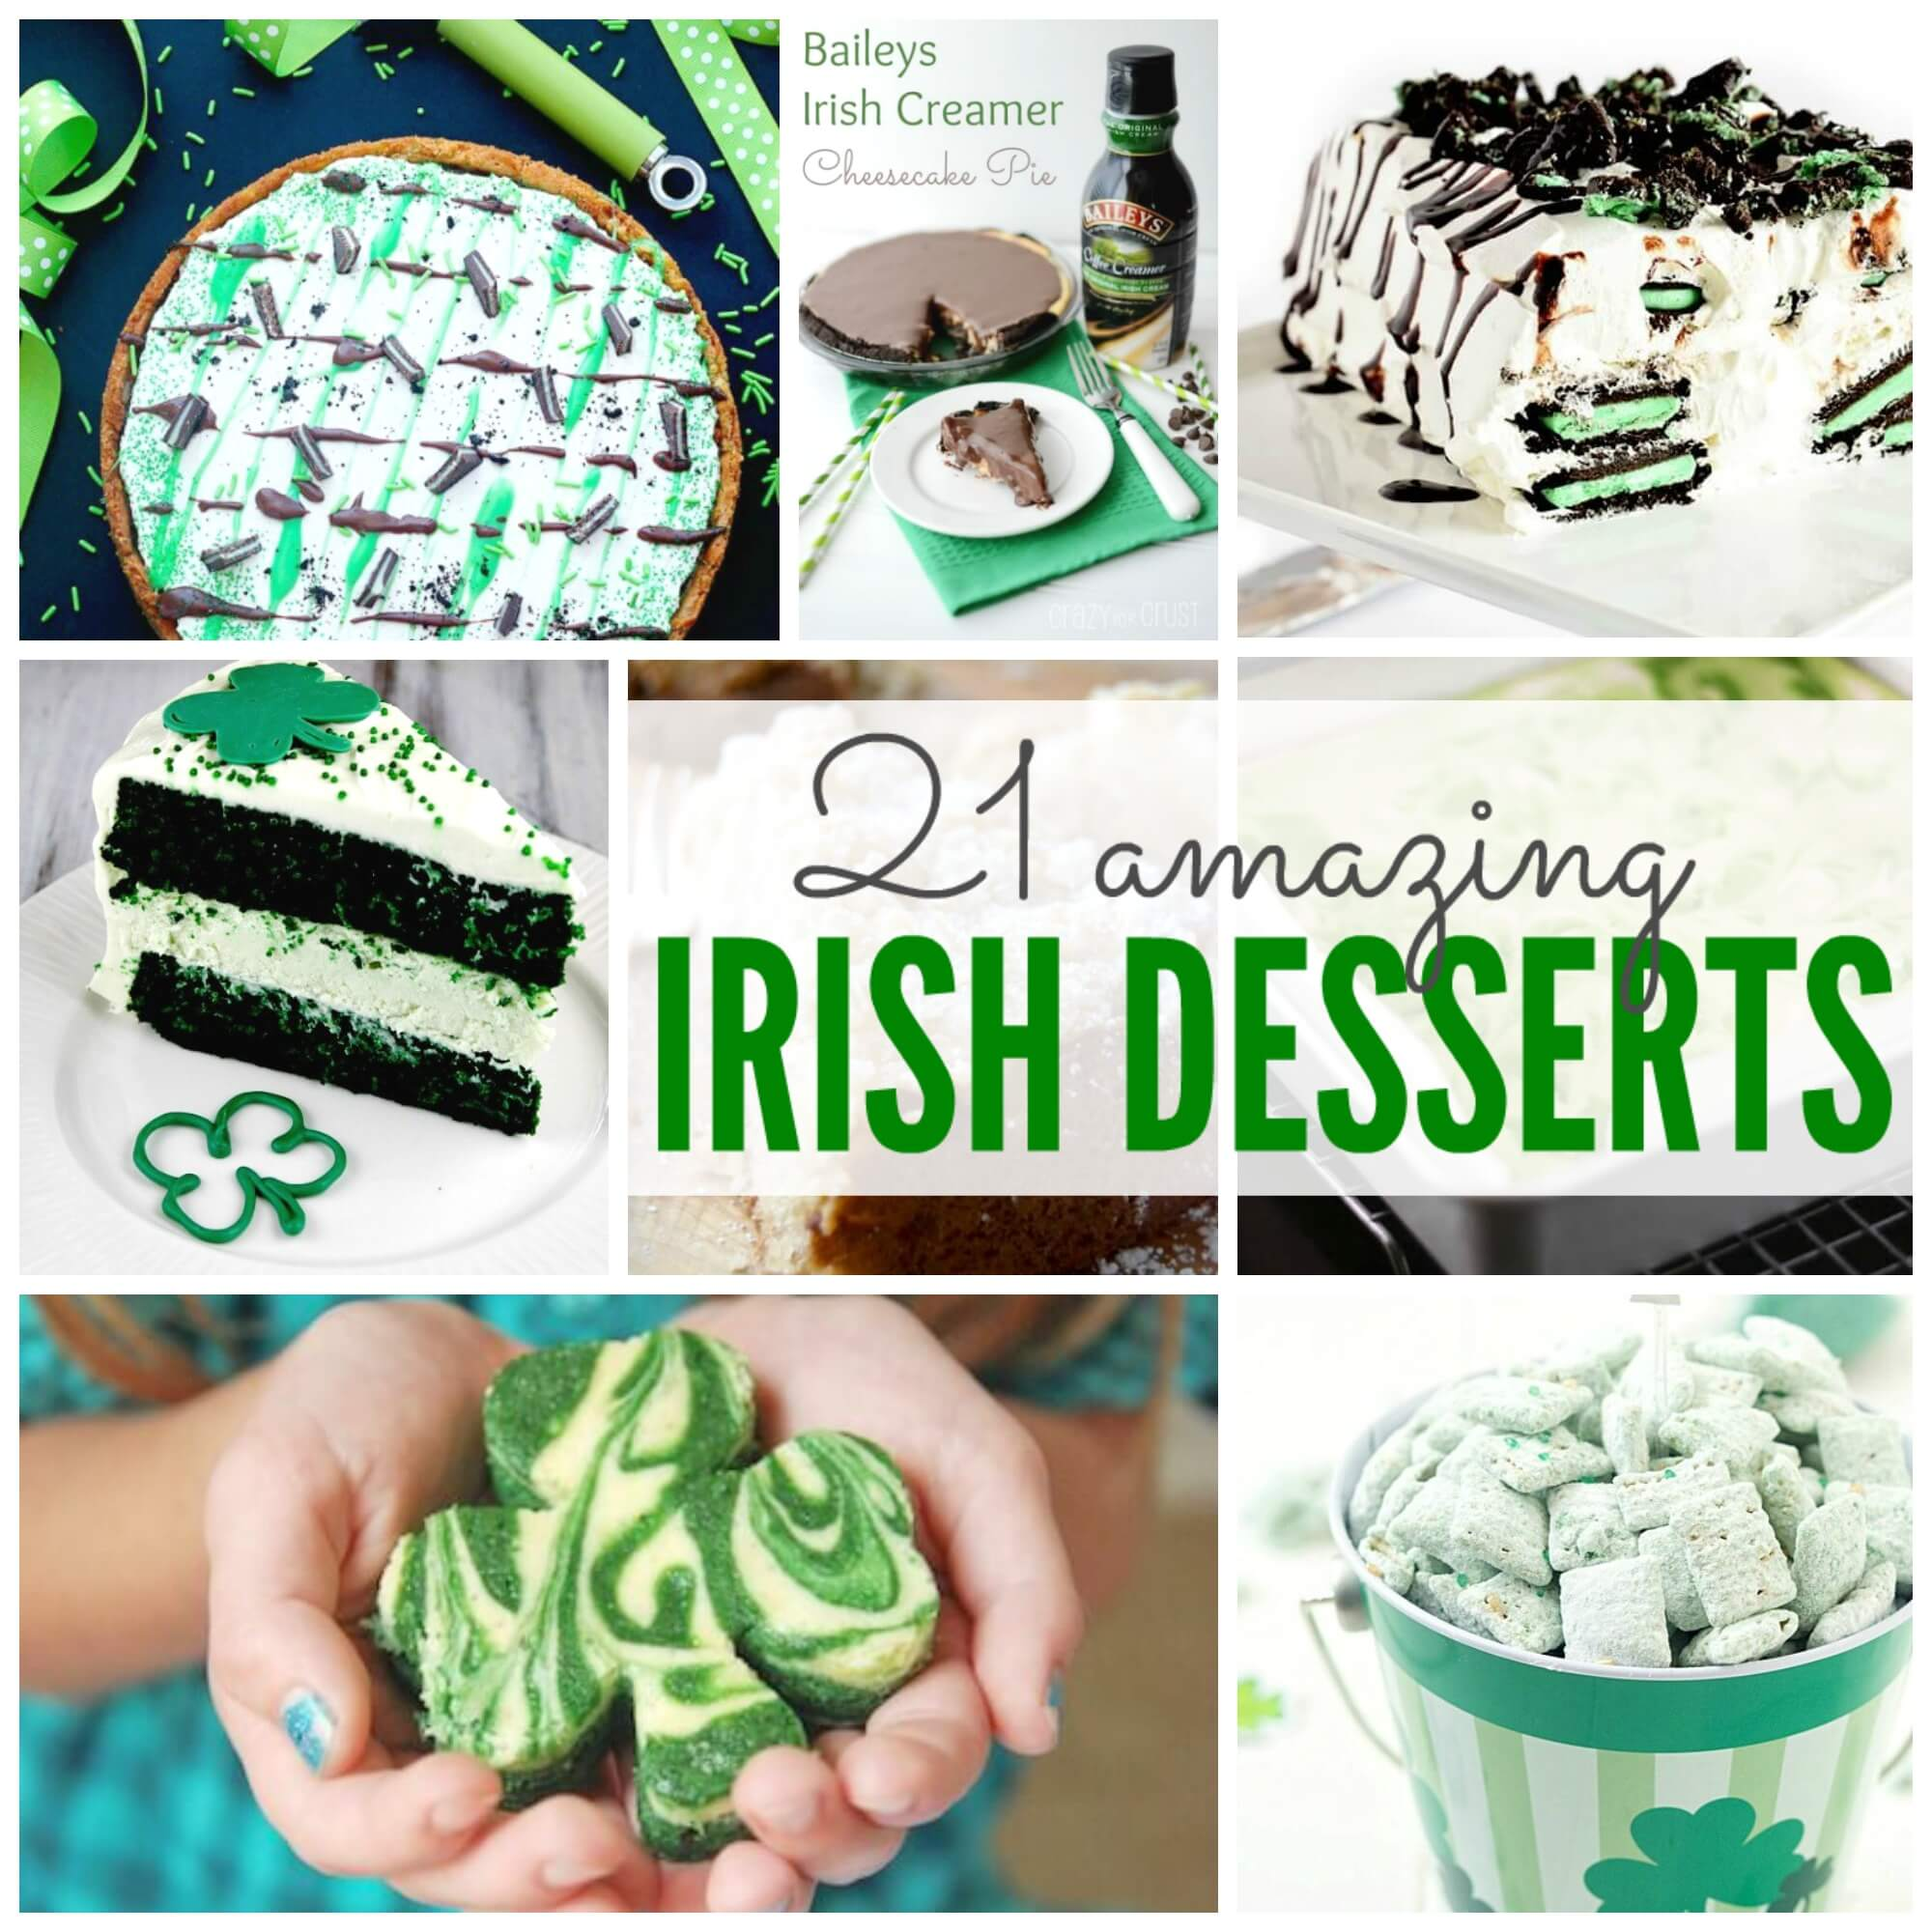 21 Amazing Irish Desserts That Are Simple & Easy To Make